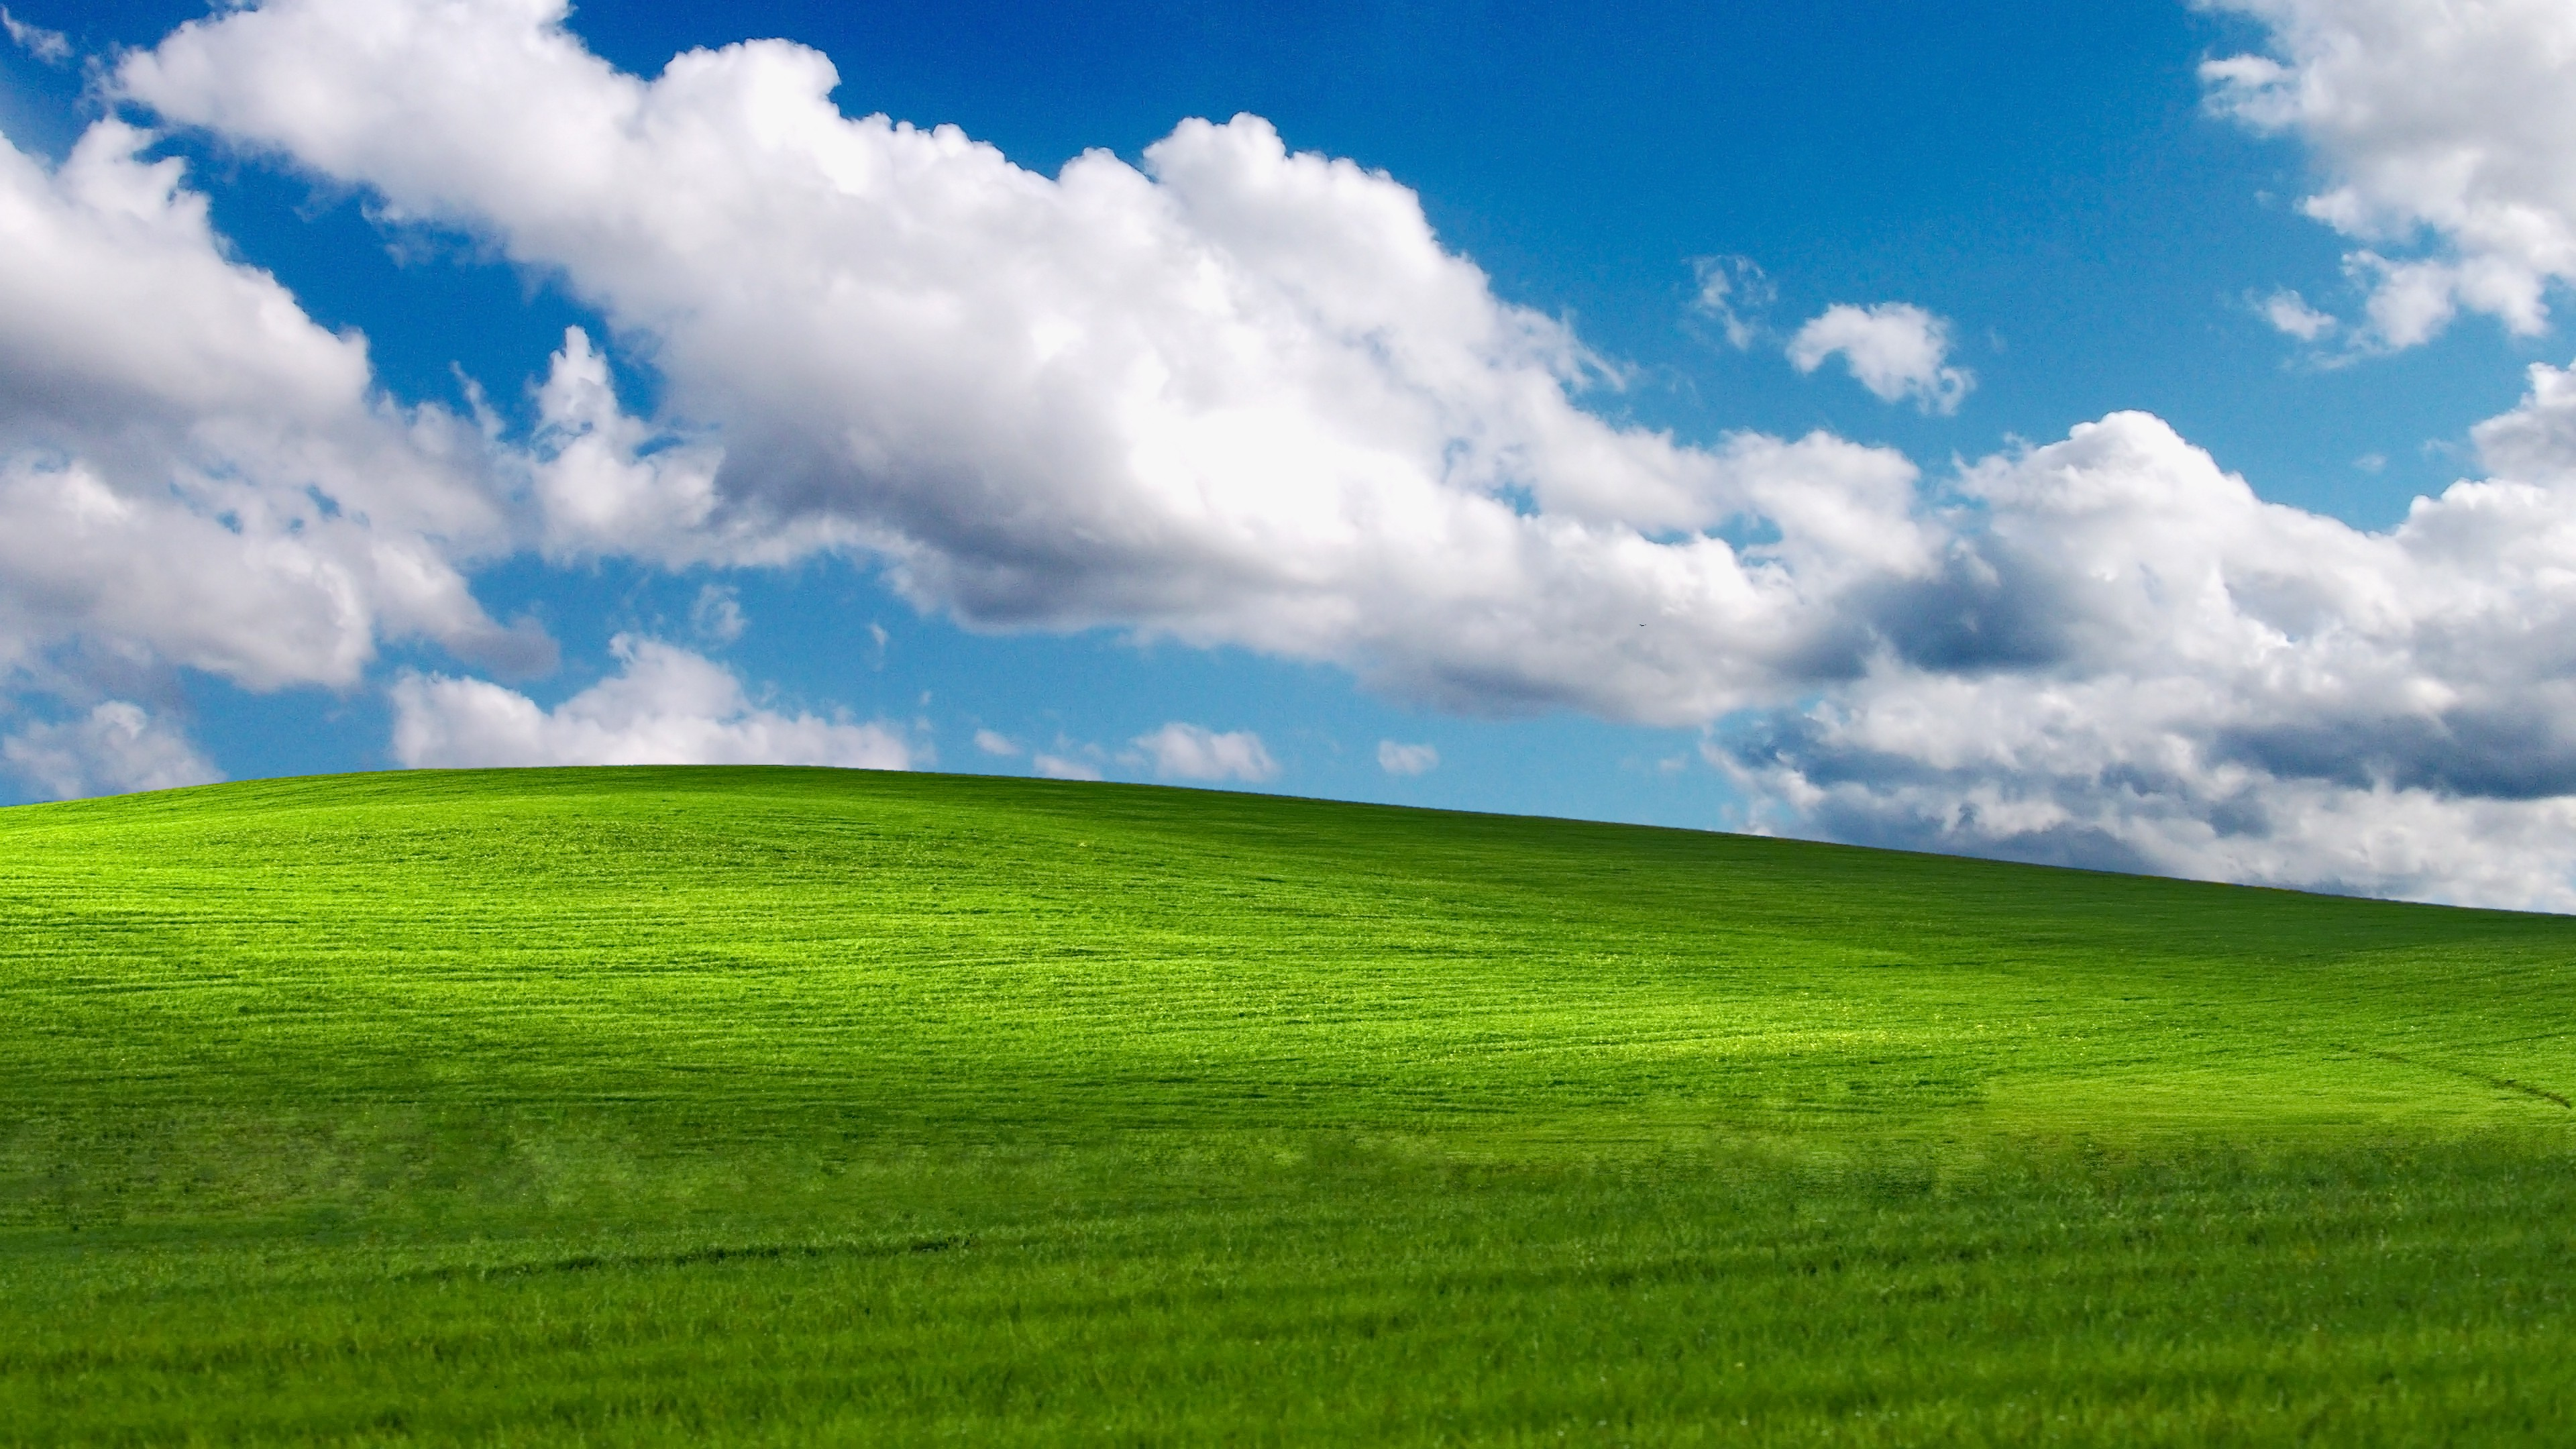 windows xp wallpaper ·① download free amazing backgrounds for